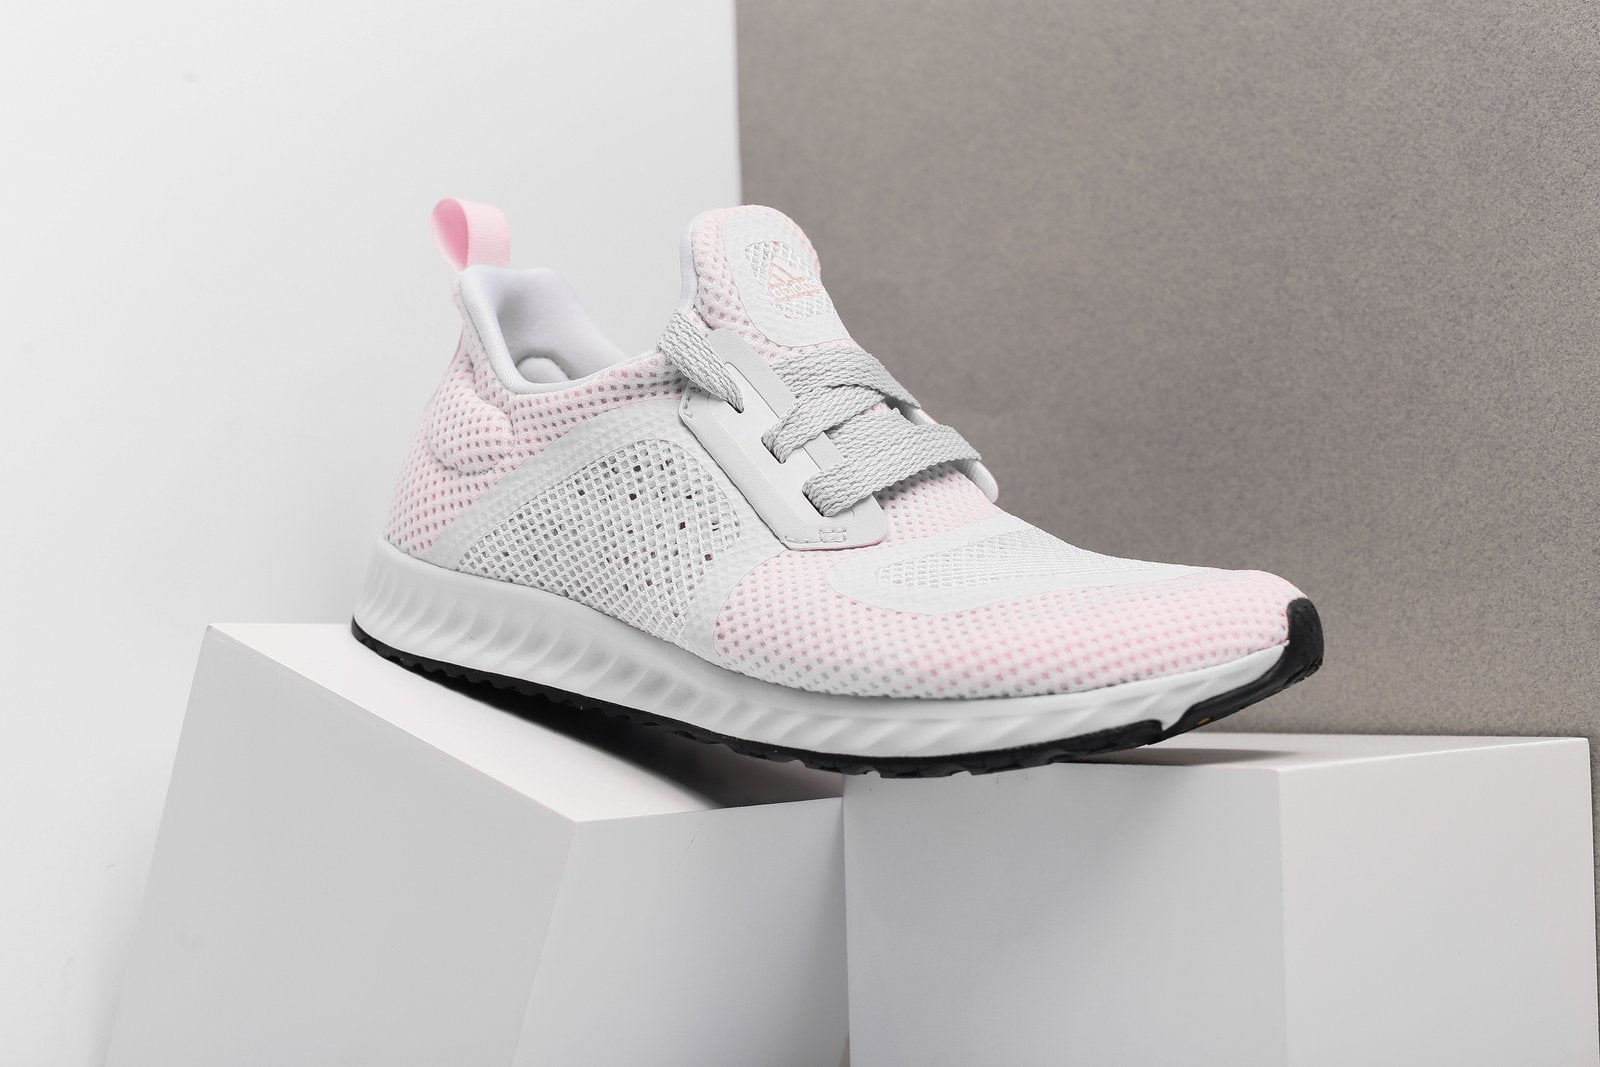 ADIDAS EDGE LUX CLIMA - Oneness Boutique